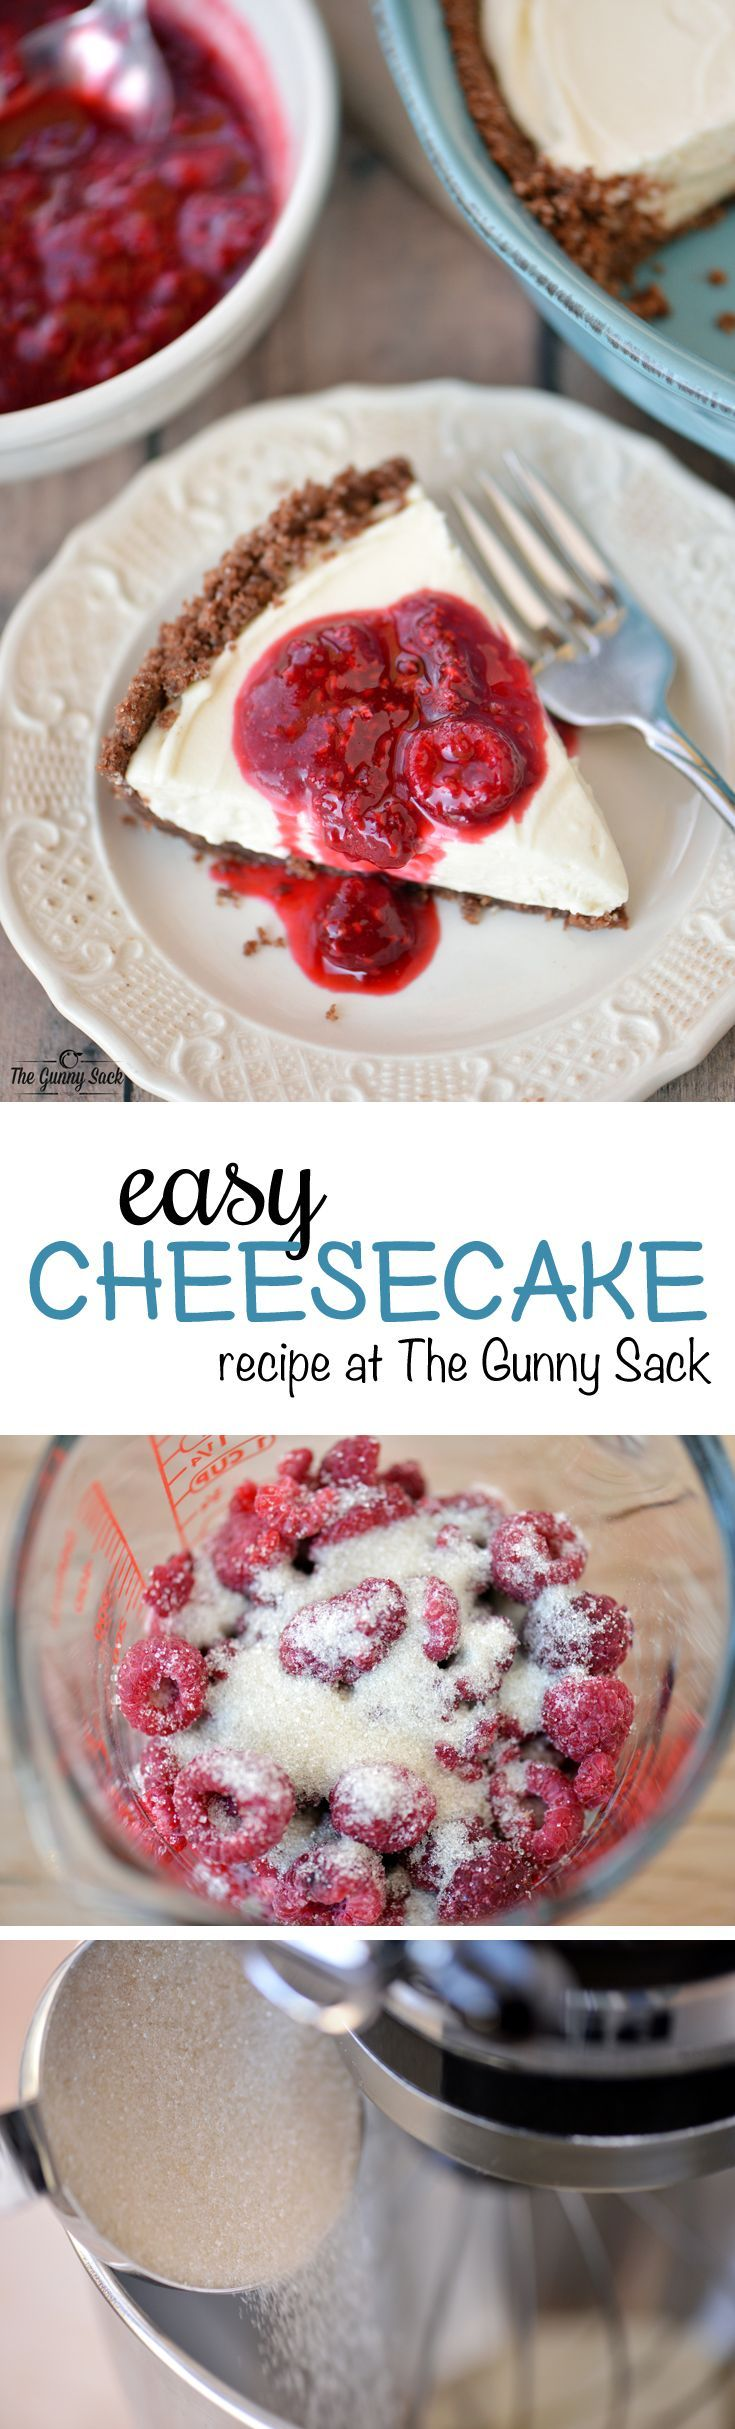 This easy cheesecake recipe with raspberry sauce is a favorite holiday recipe. It's a no bake cheesecake recipe with a chocolate graham cracker crust. | thegunnysack.com #ad